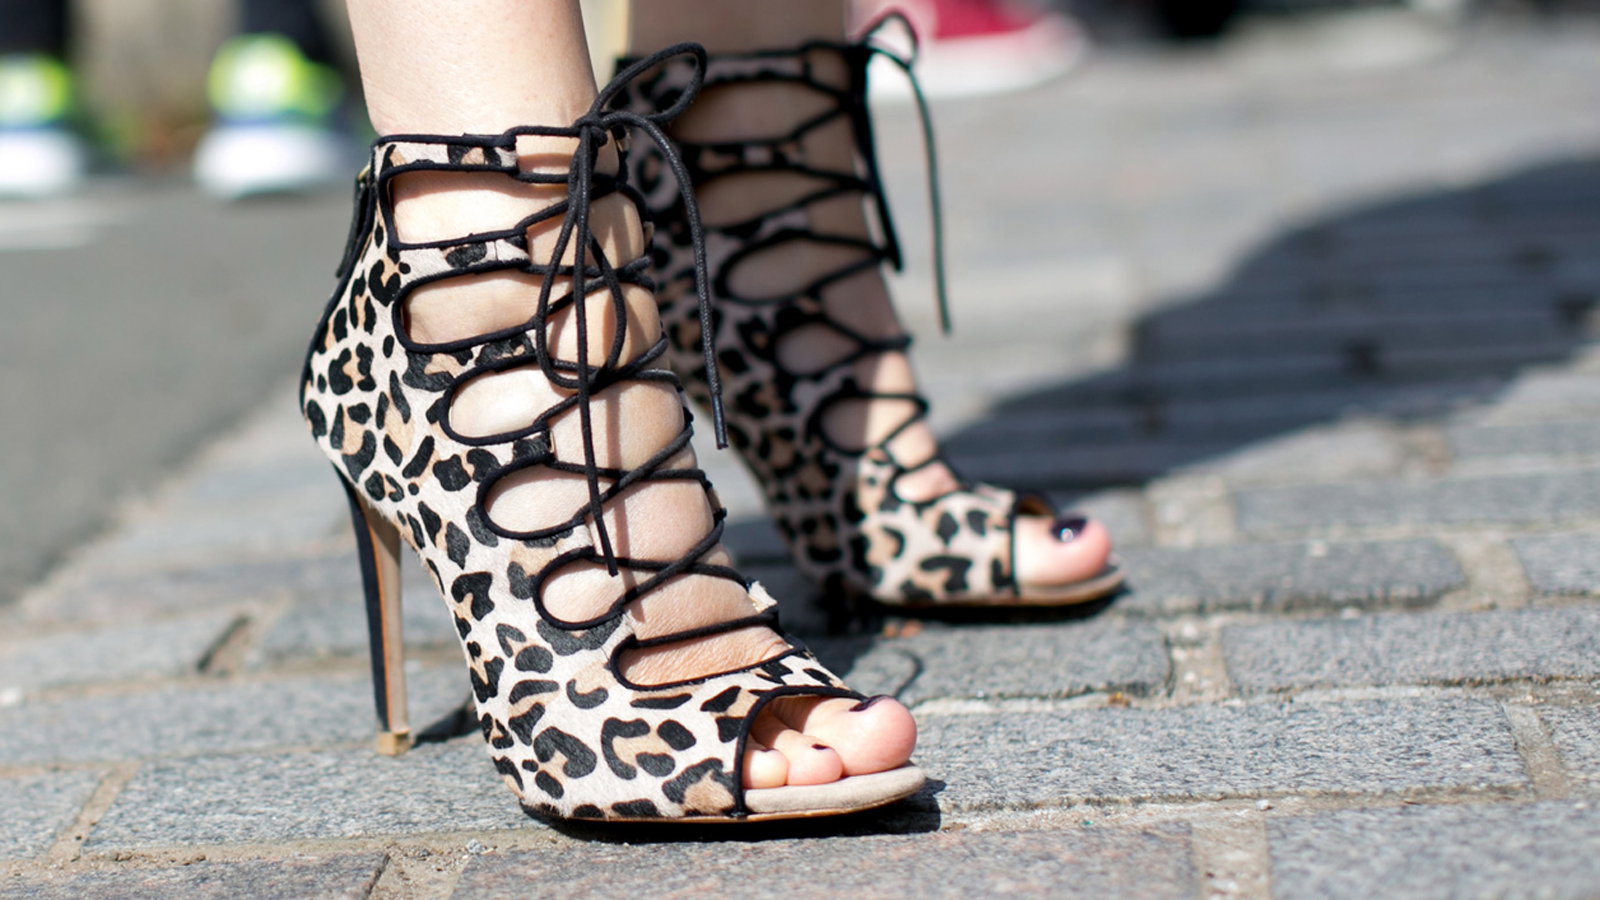 heels1 3 Tricks to Keeping New Shoes Looking New